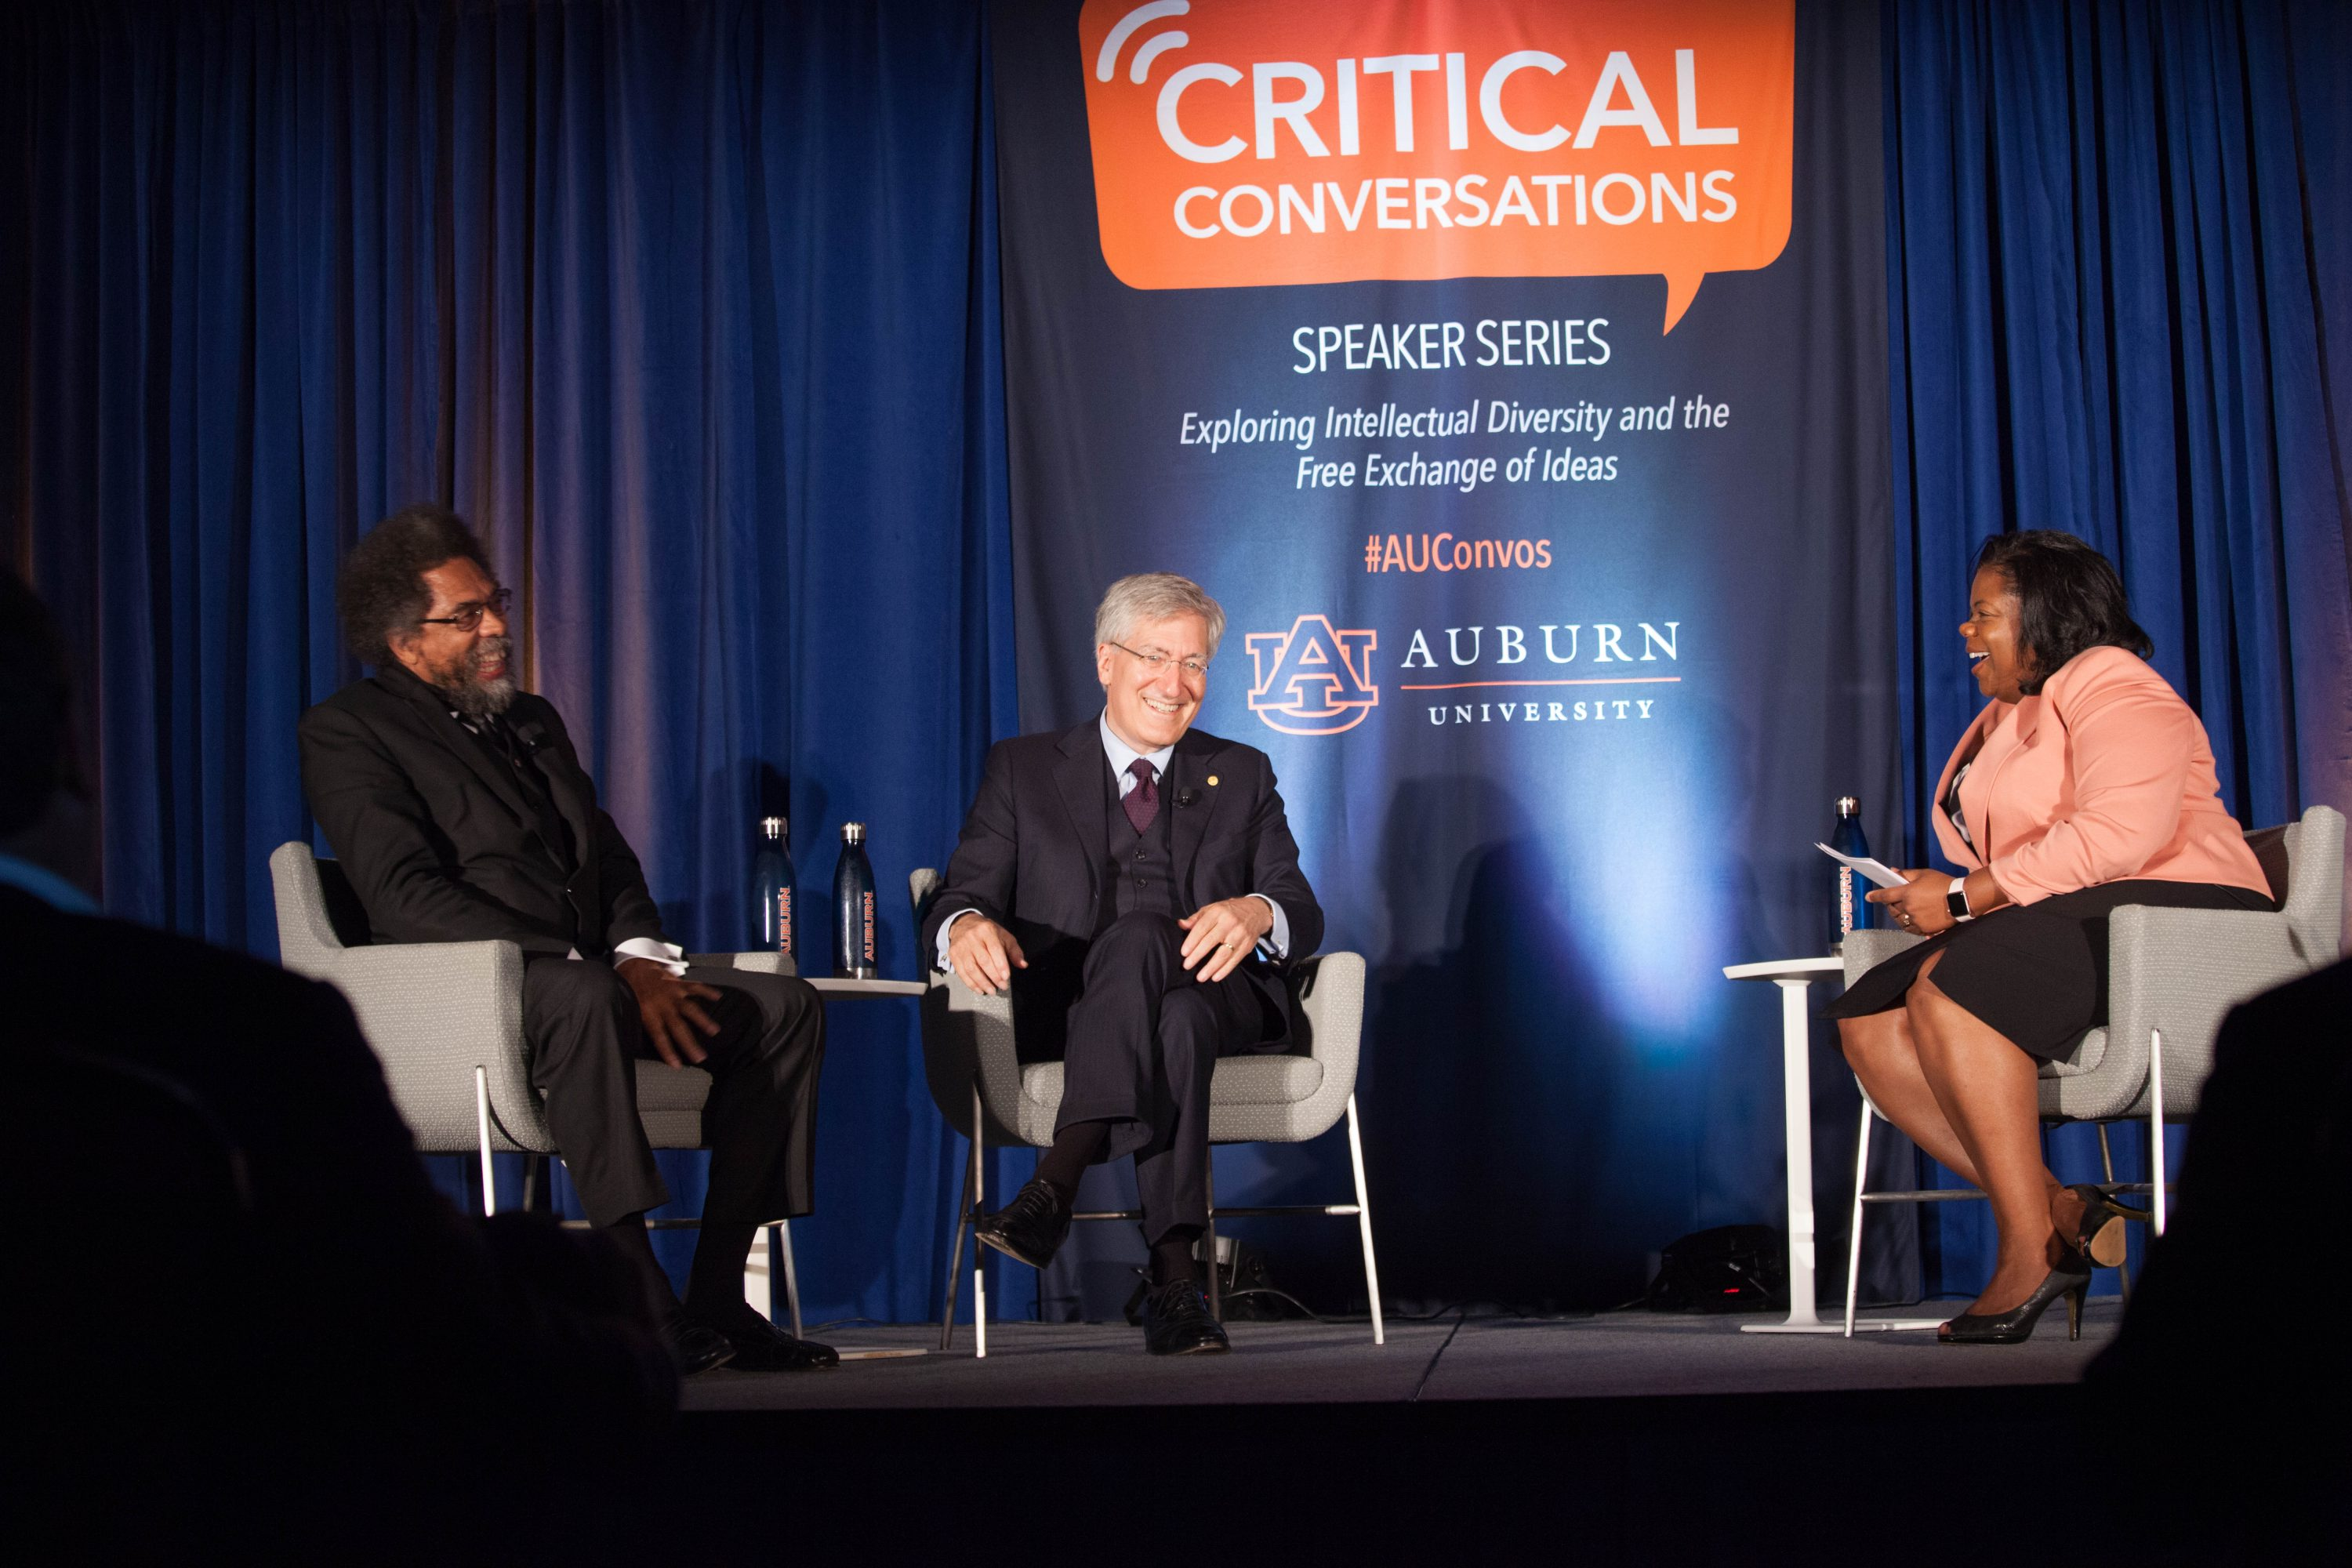 Professors Cornel West and Robert George discuss the importance of intellectual diversity with Dr. Taffye Benson Clayton